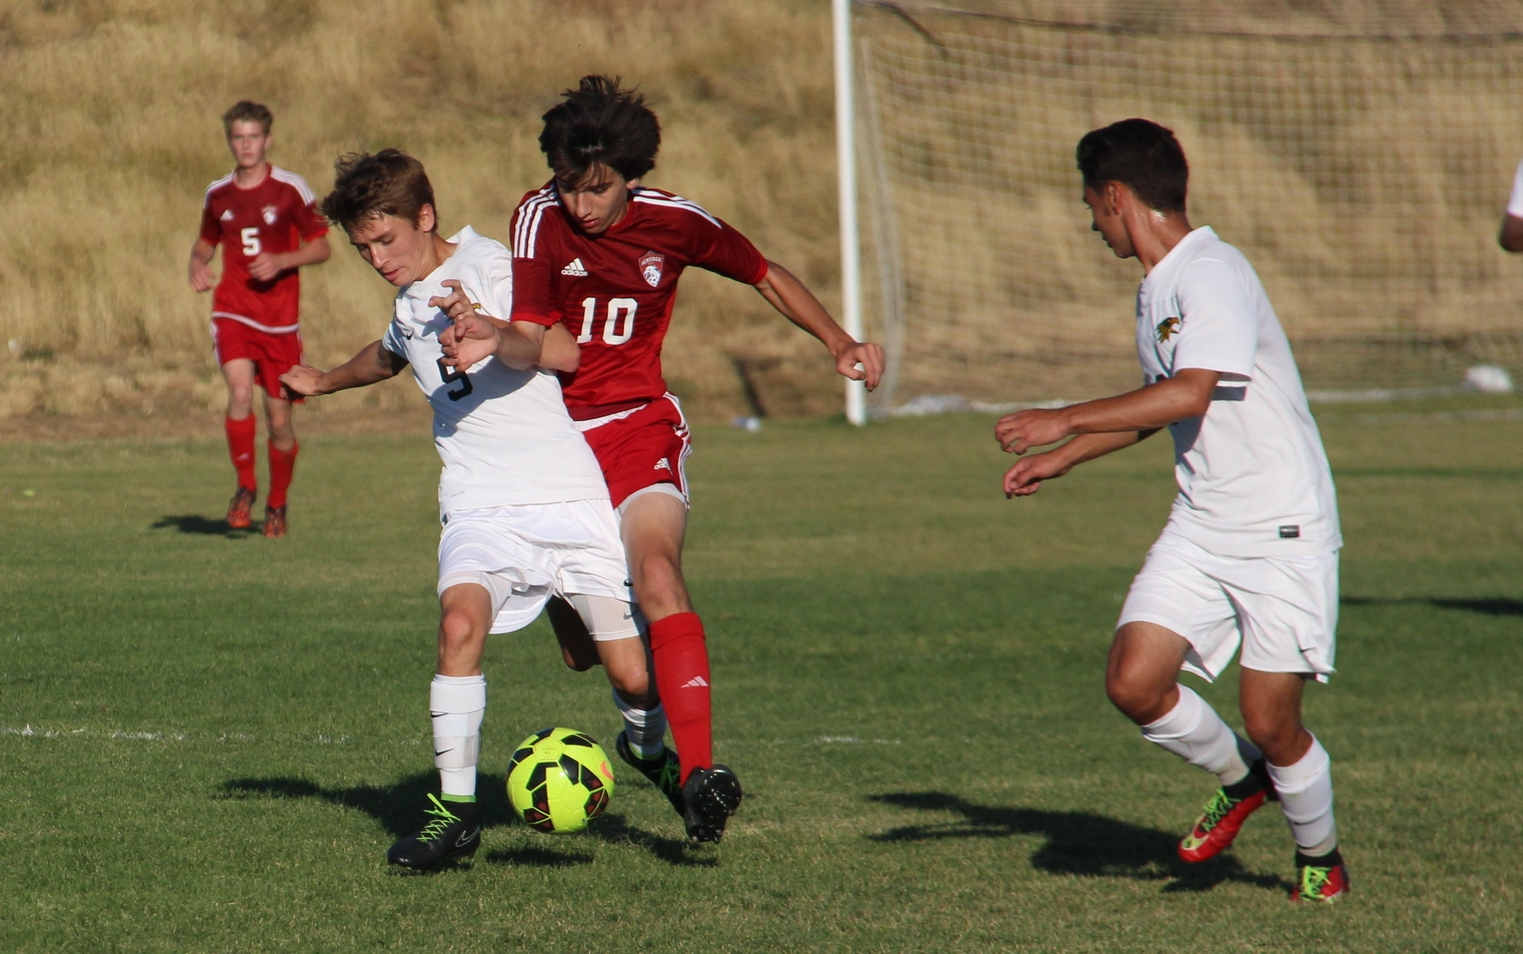 Senior Brent Lackey dribbles the ball around a defender from Heritage High School.